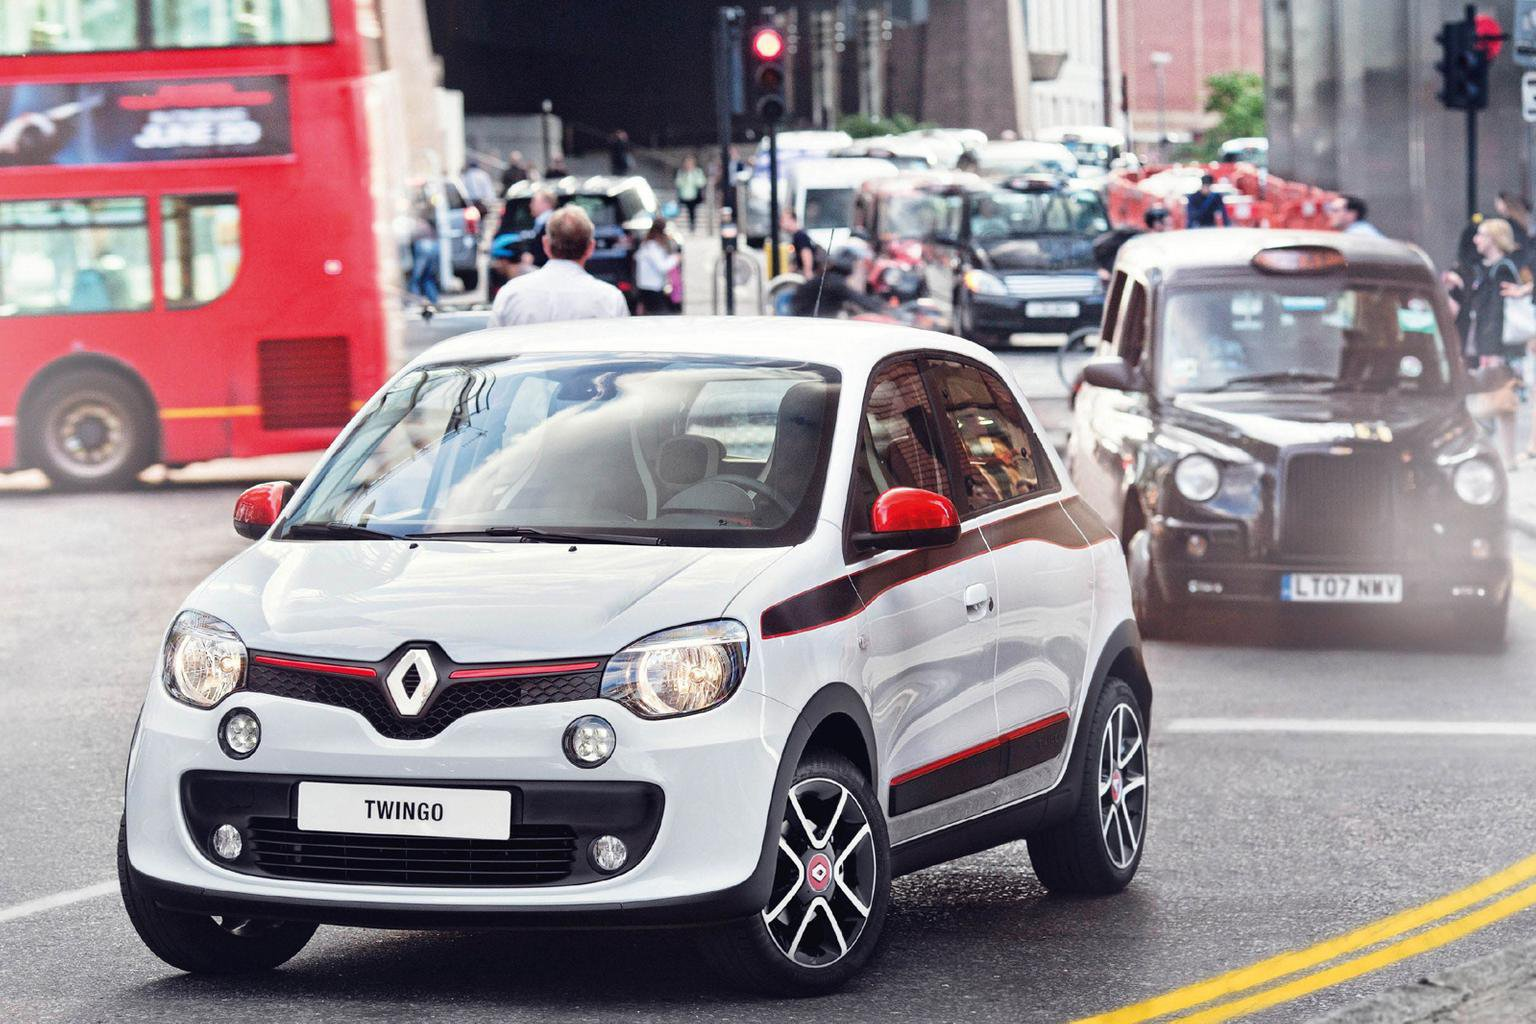 New Renault Twingo starts at 9495